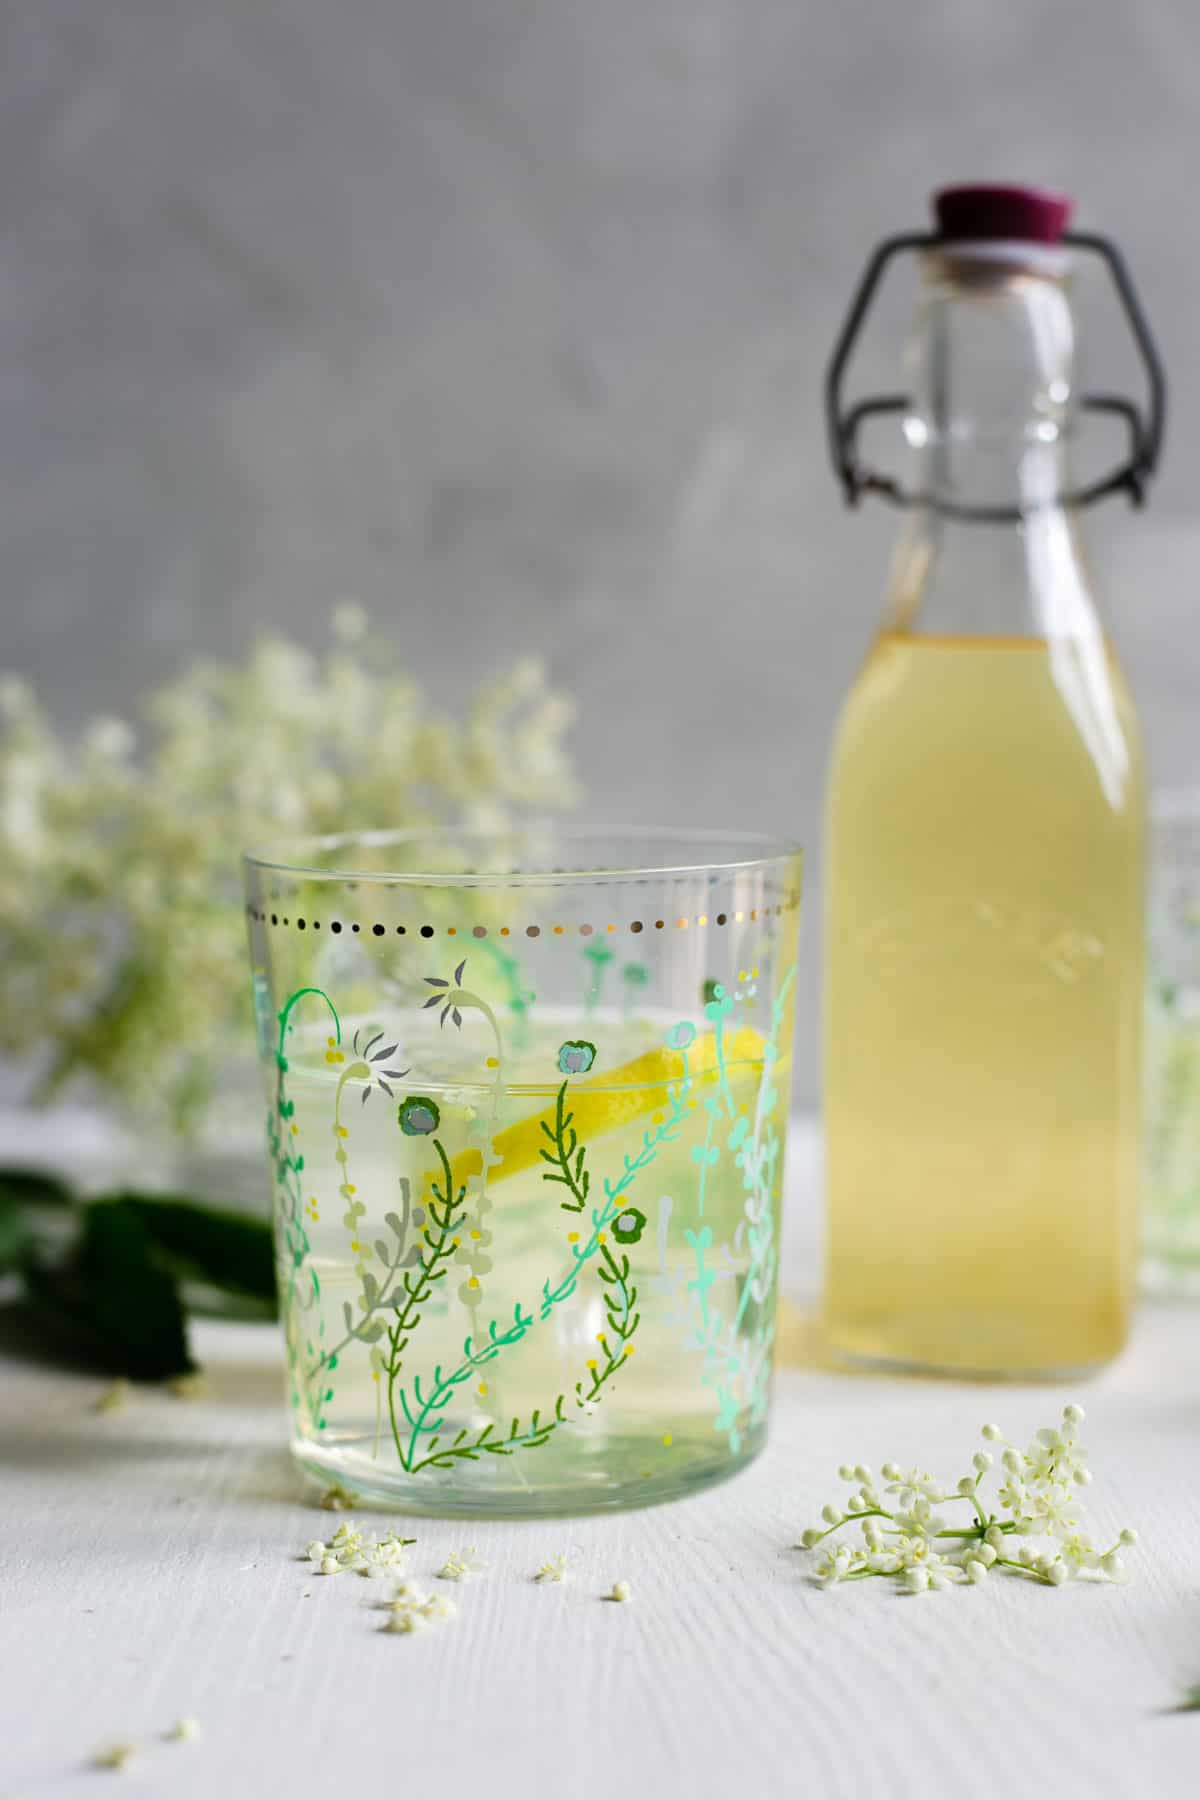 Classic elderflower cordial, delicious and fragrant drink, ideal for summer days! #elderflower #summerdrink #homemade | via @annabanana.co